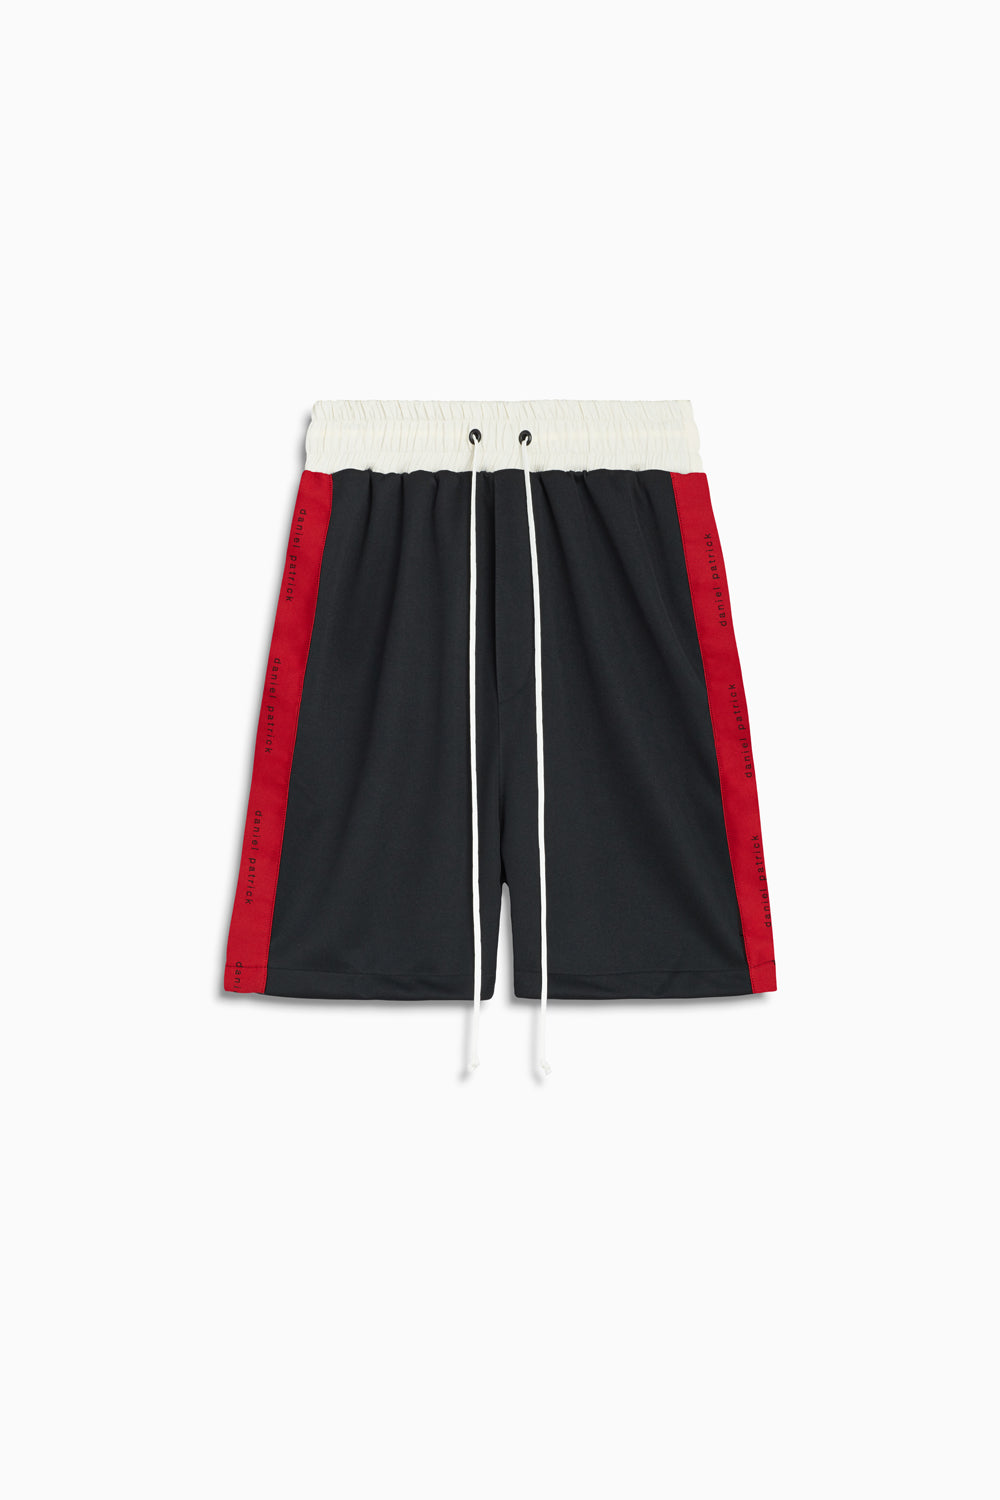 roaming gym shorts in black/red/ivory by daniel patrick